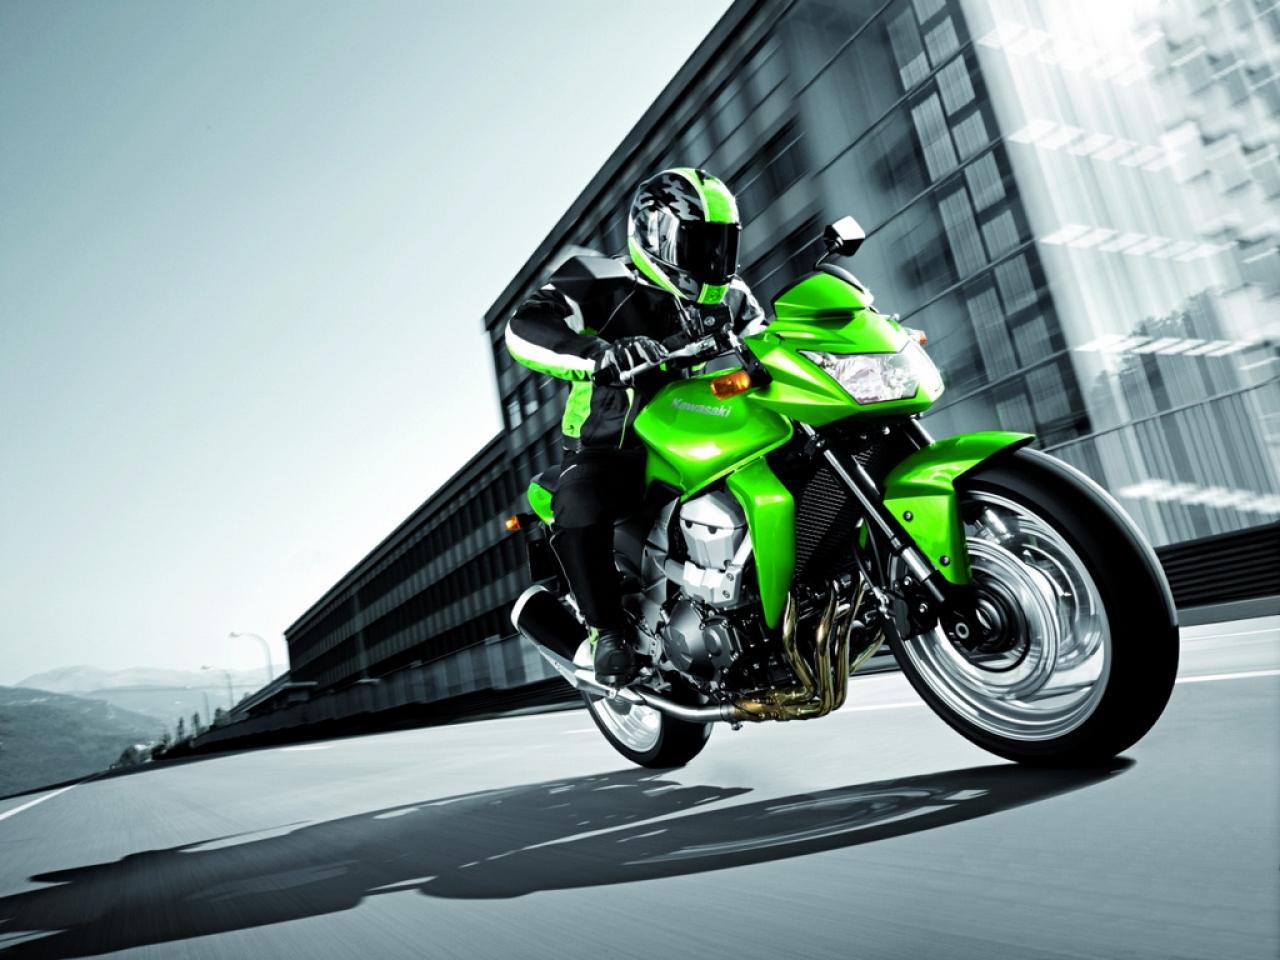 Ihot Wallons 2009 KAWASAKI Z750 Accident Lawyers